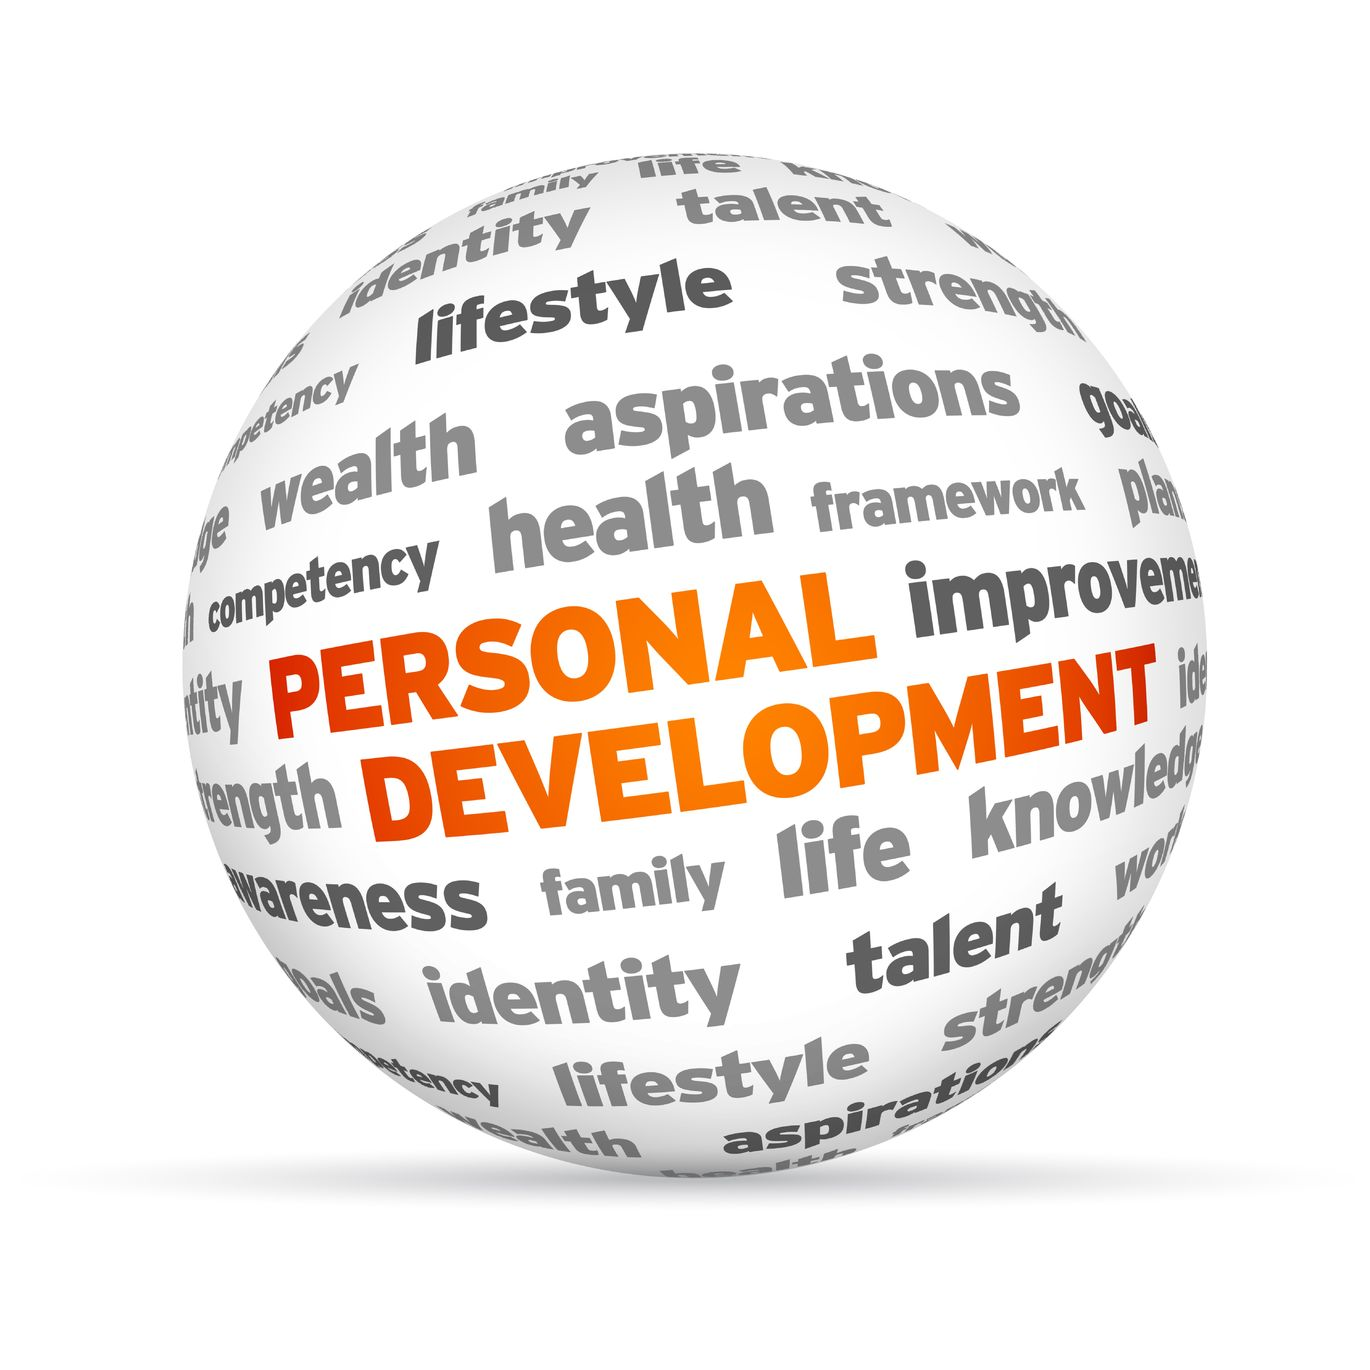 Personal Growth And Development Personal Development W...